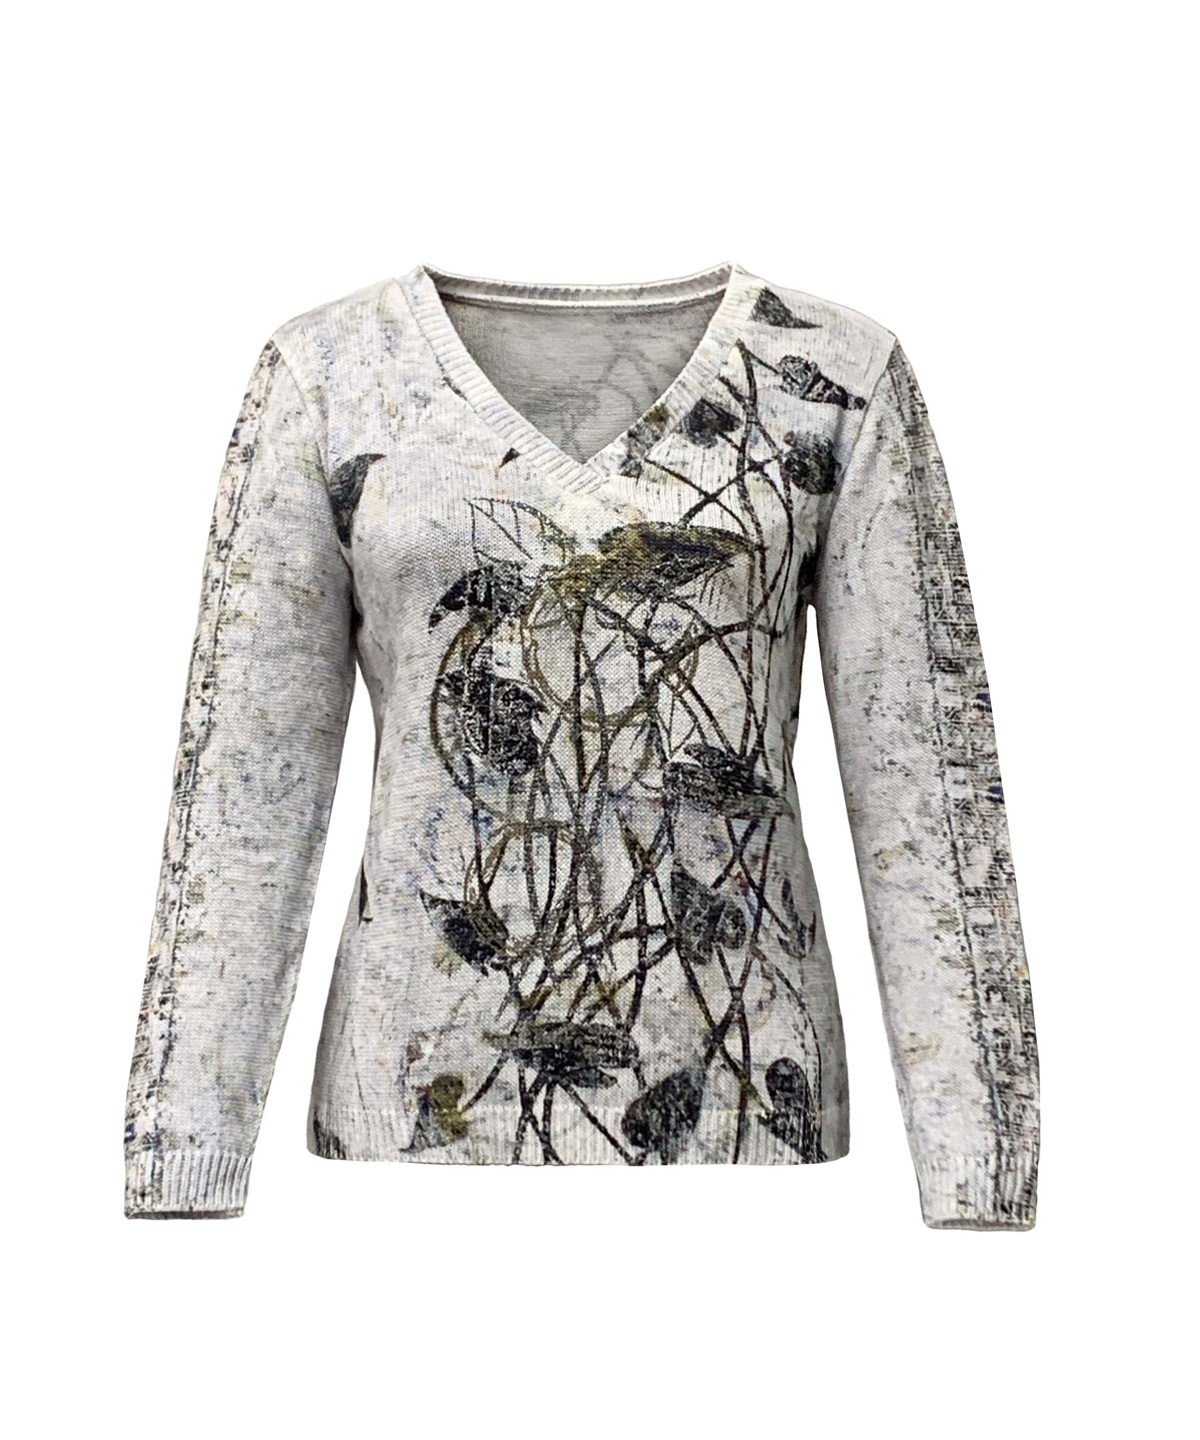 Simply Art Dolcezza: Random Acts Of Petal Beauty Abstract Art Sweater SOLD OUT Dolcezza_Simply_Art_59125